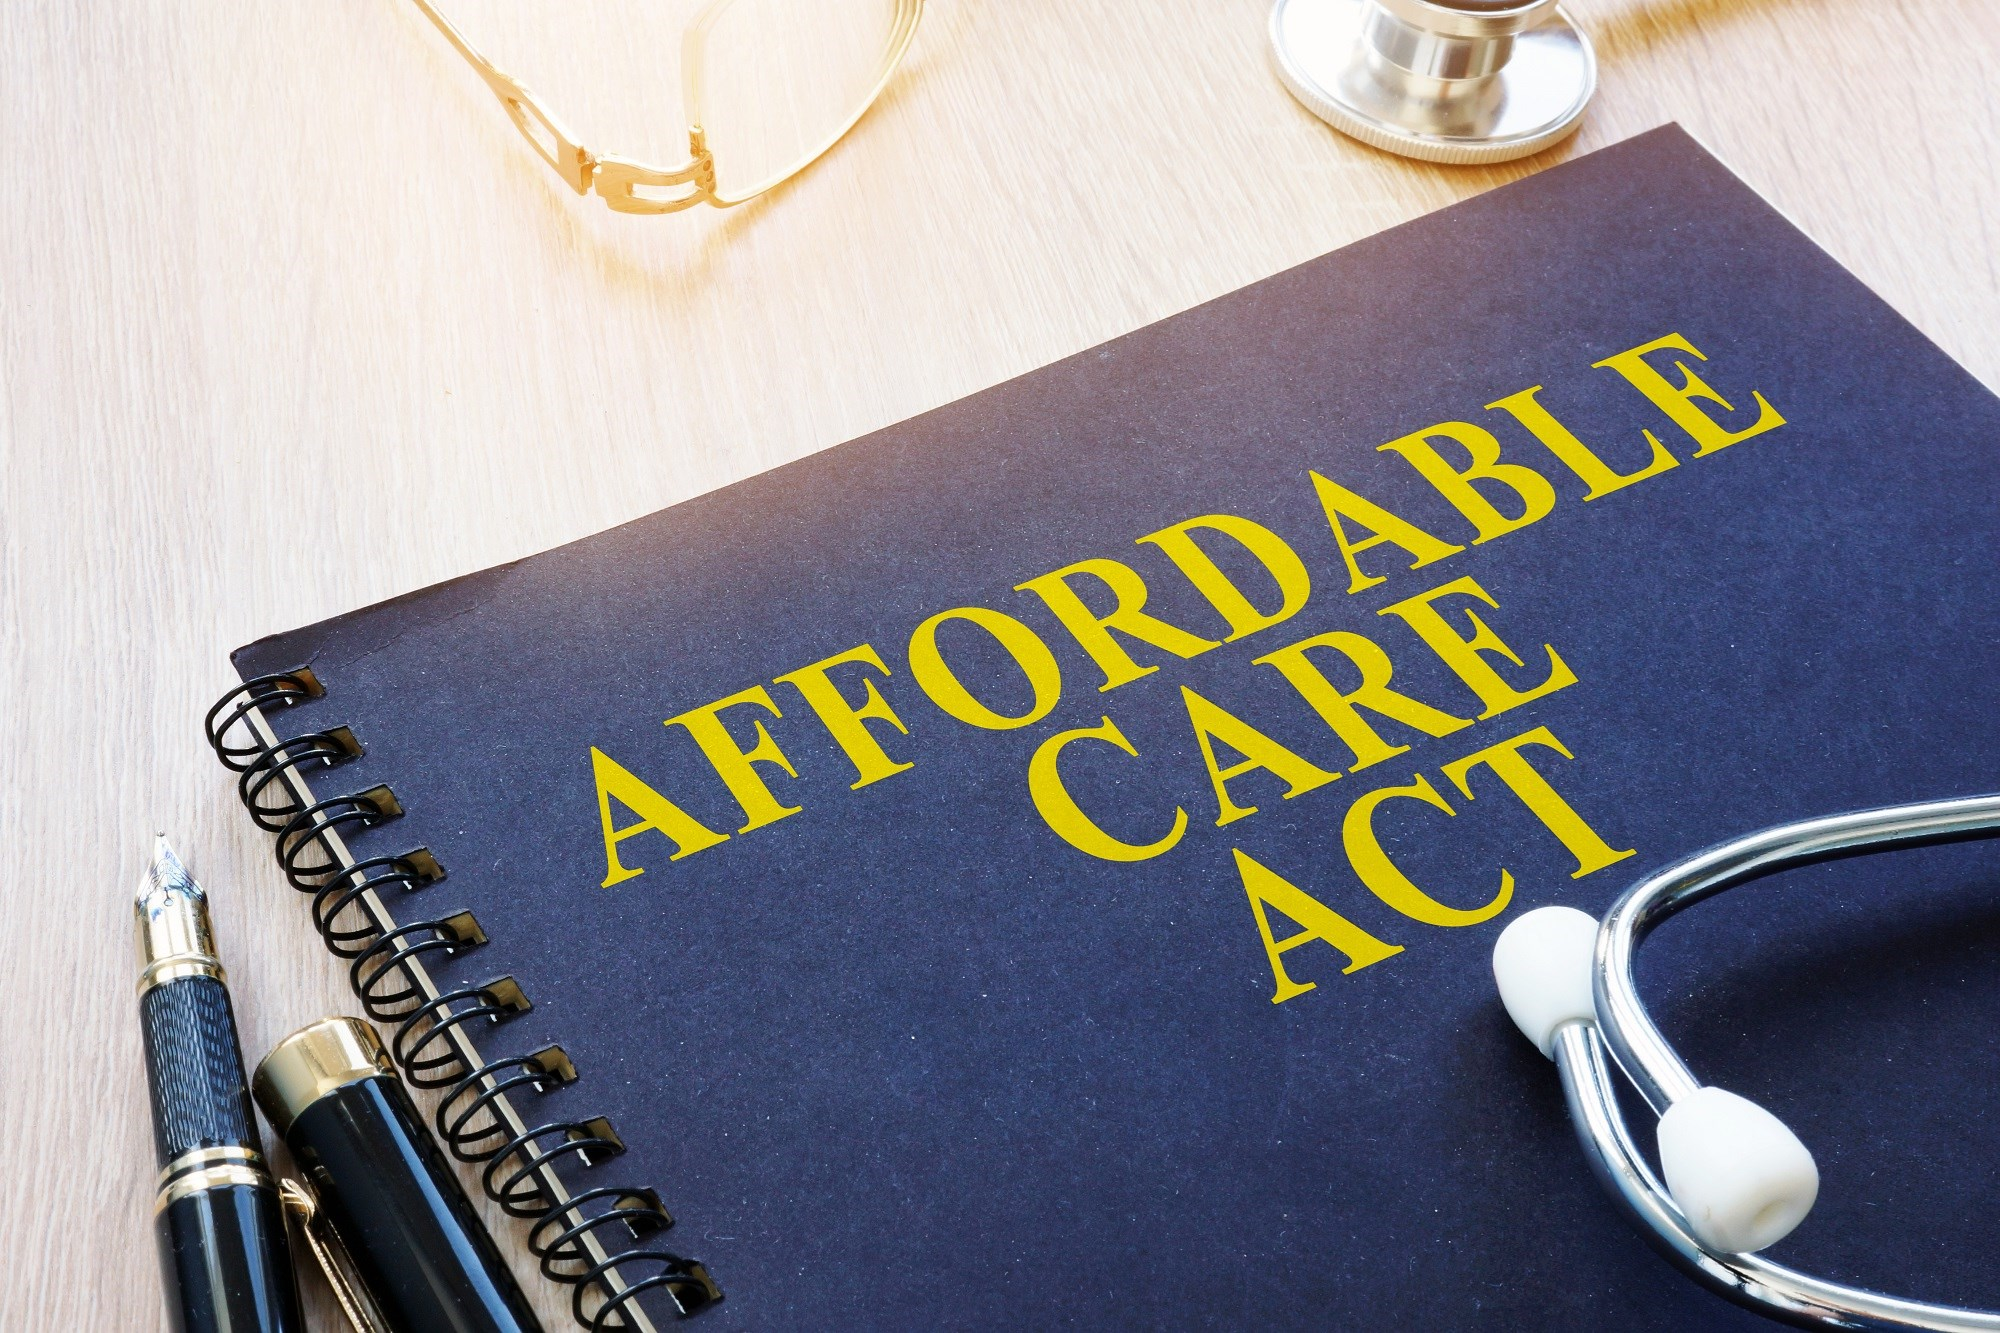 Eliminating the Affordable Care Act's individual mandate penalty is unlikely to destabilize the individual market in California but could roll back coverage gains.